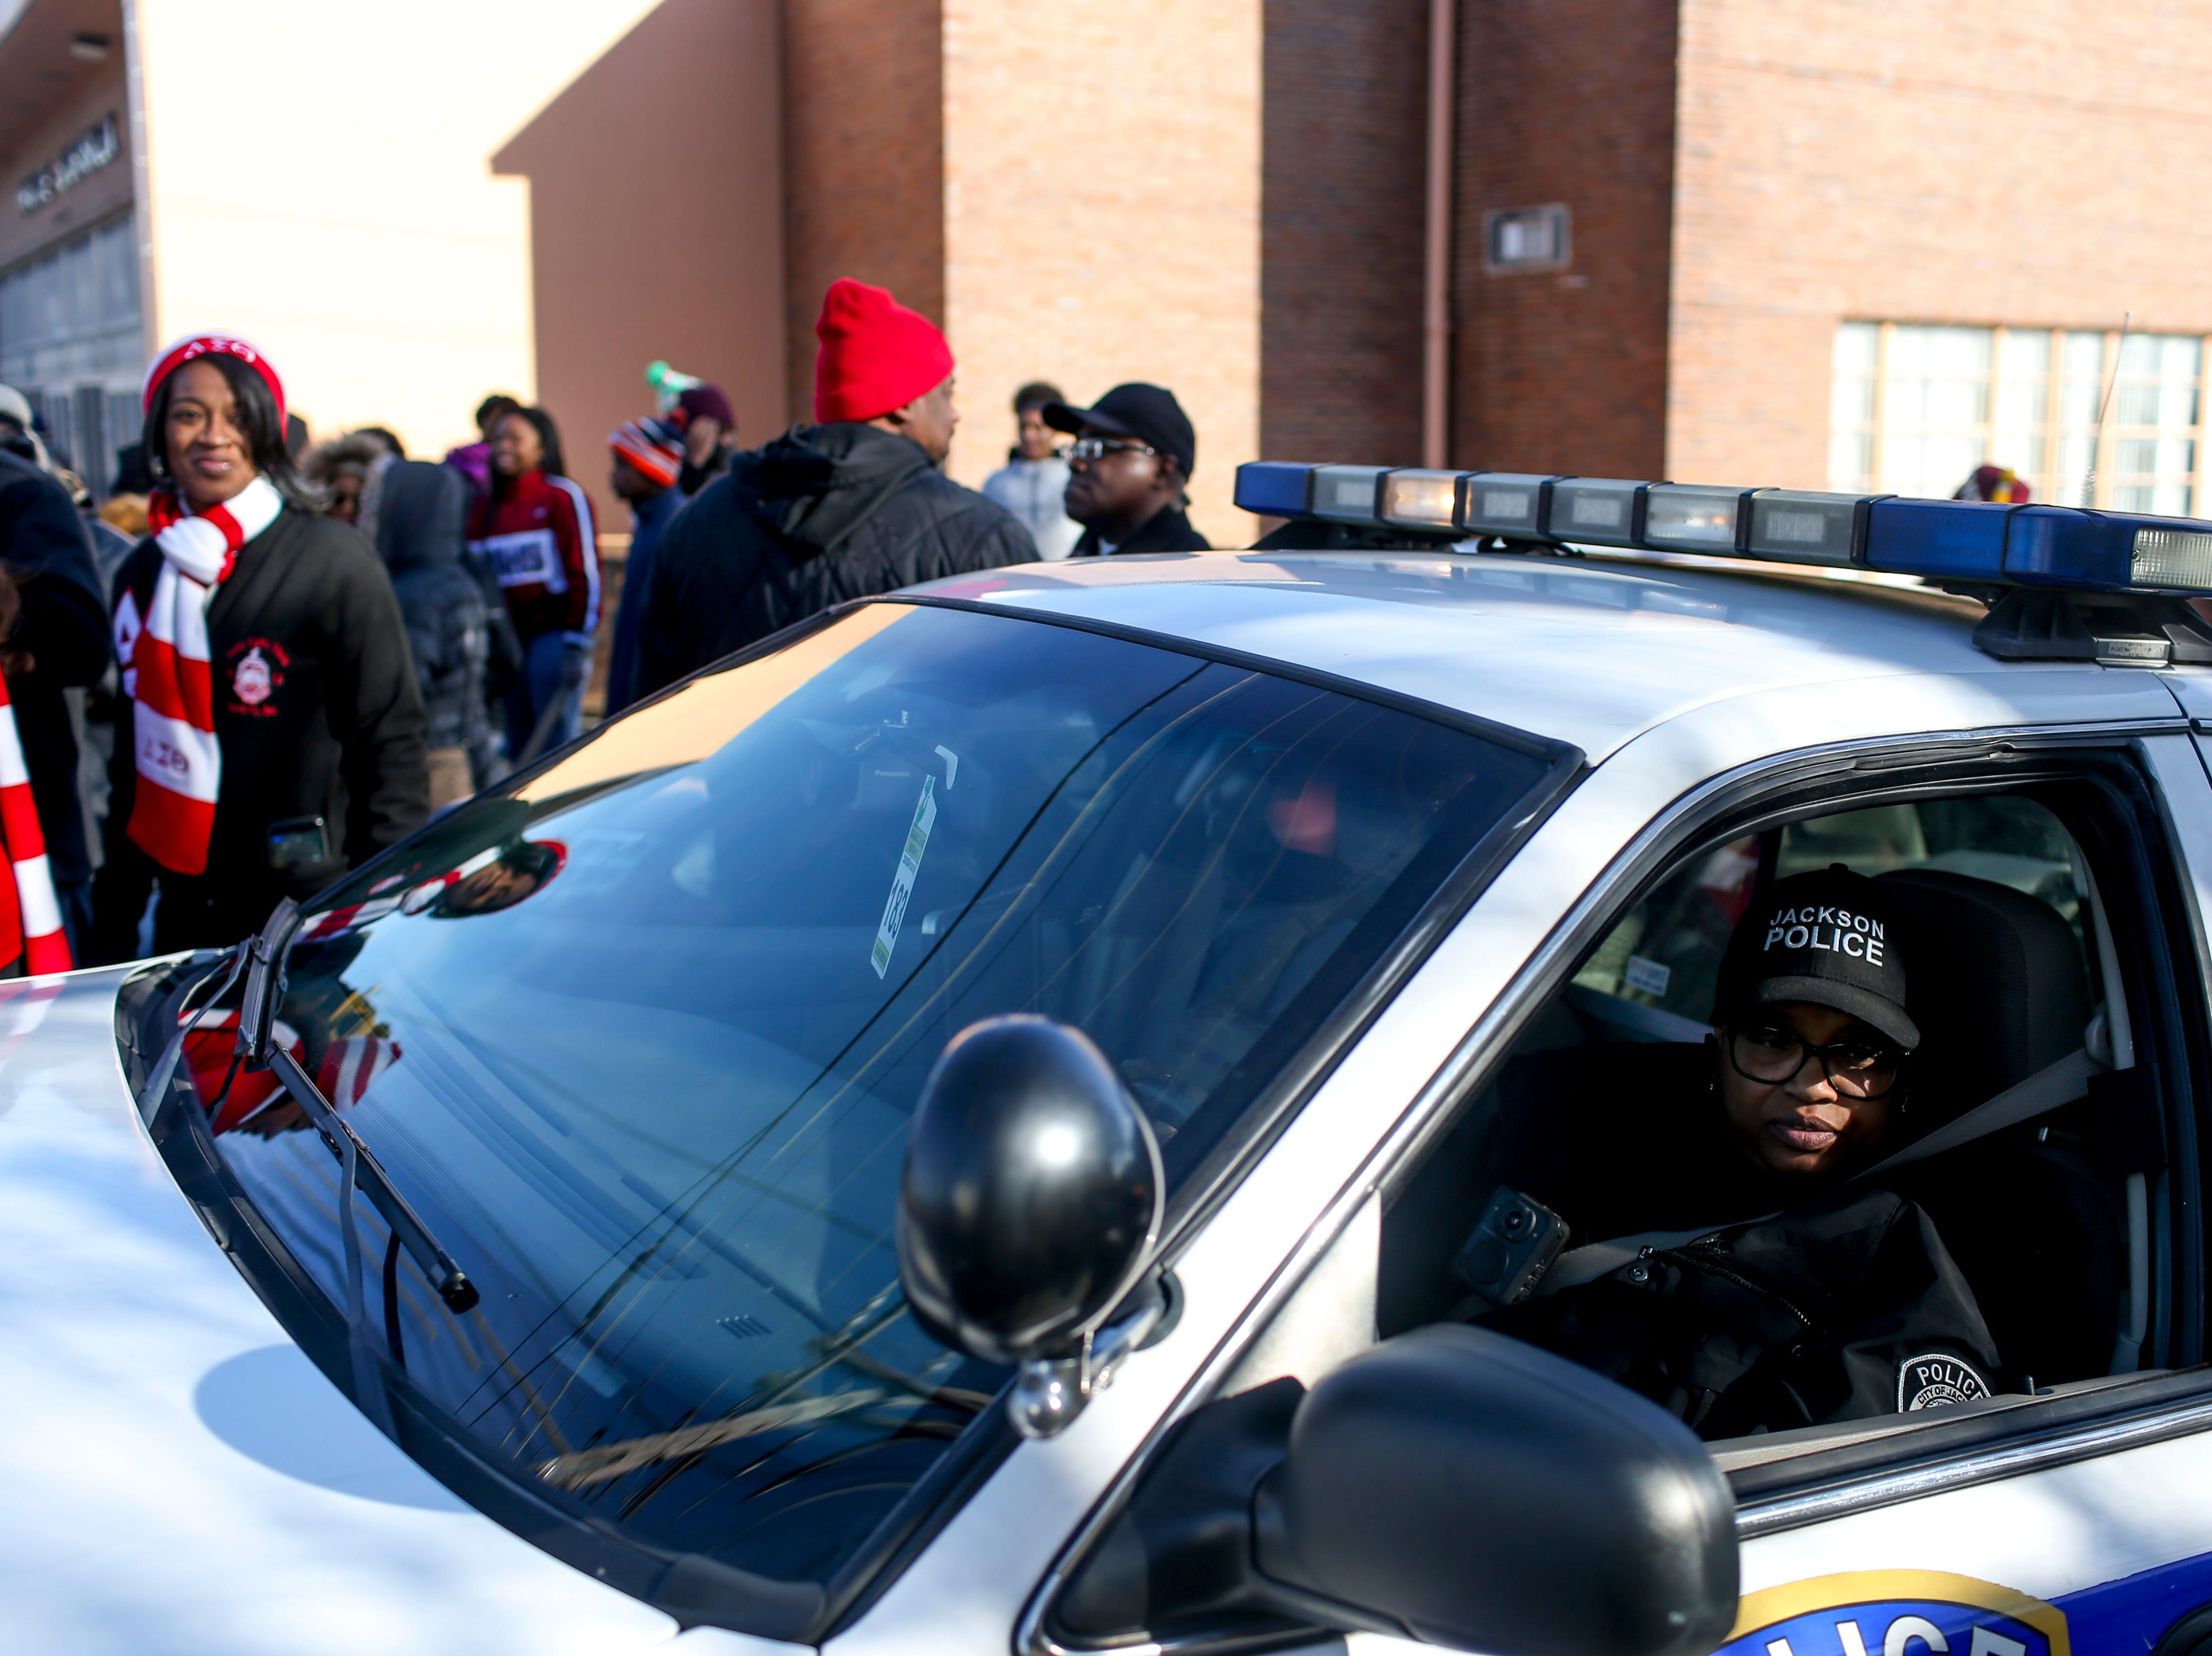 A Jackson Police officer looks out of their cruiser window before leading a march through downtown Jackson to Mt. Zion Baptist Church at T.R. White Sportsplex in Jackson, Tenn., on Monday, Jan. 21, 2019.